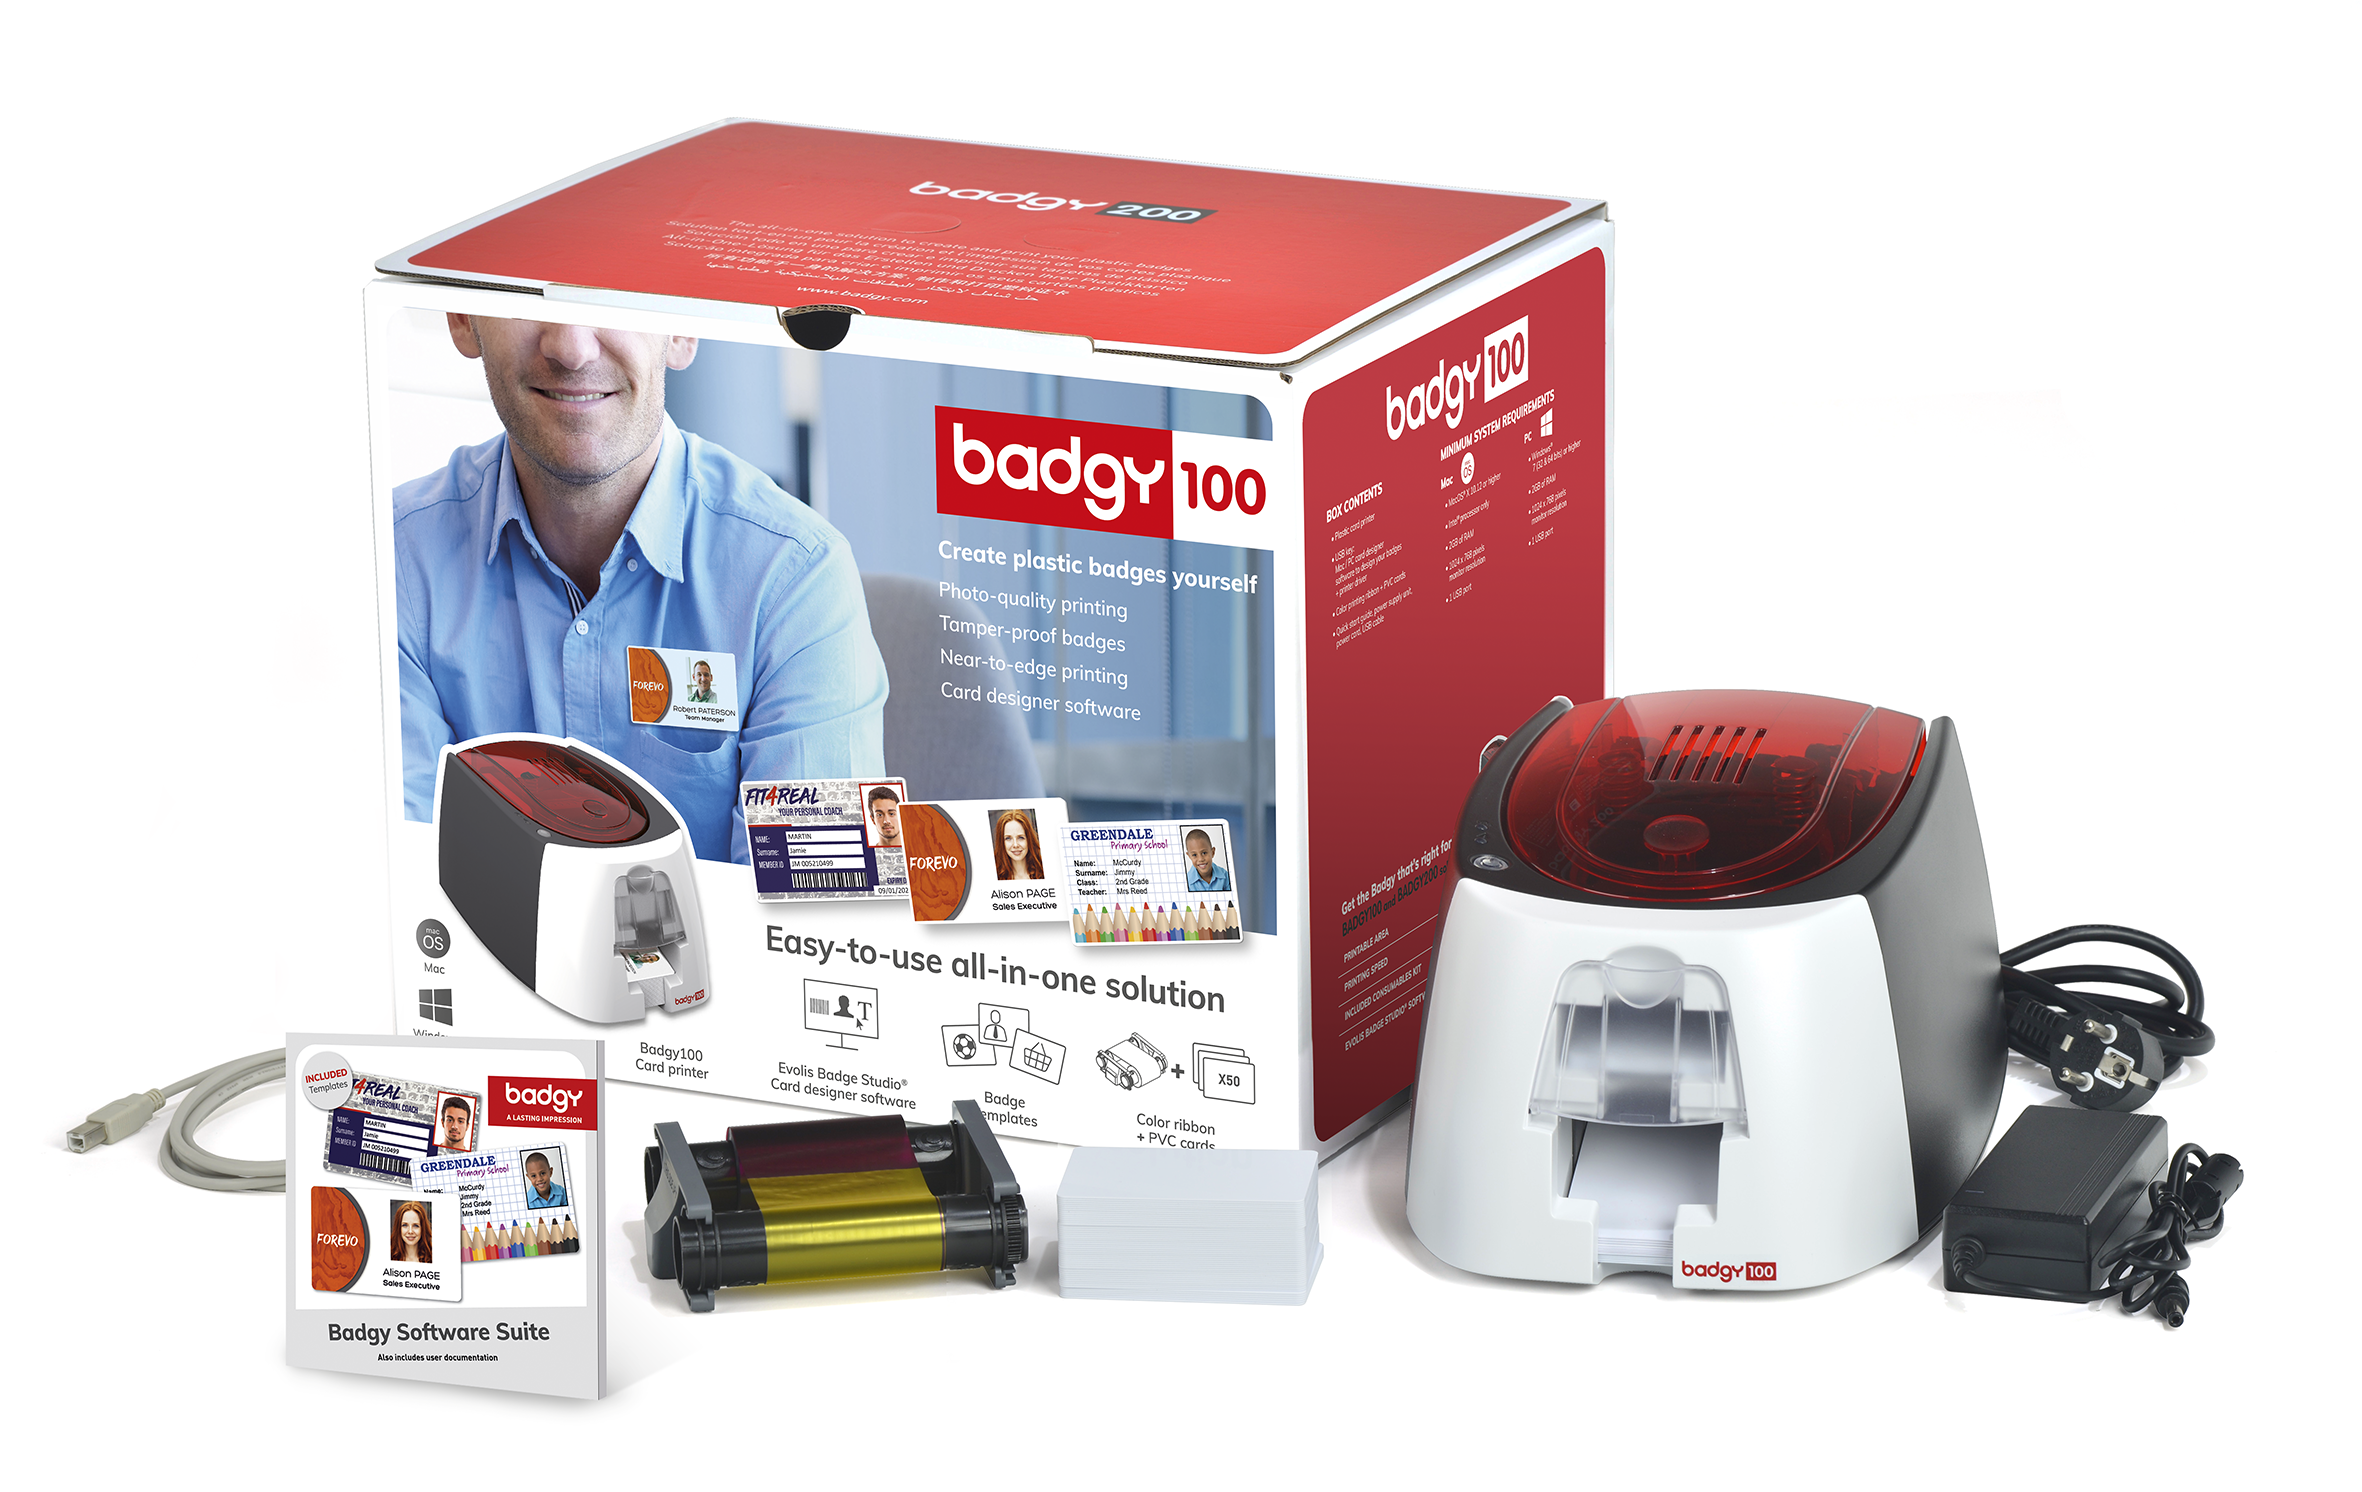 Complete Badgy100 Plastic card printing solution